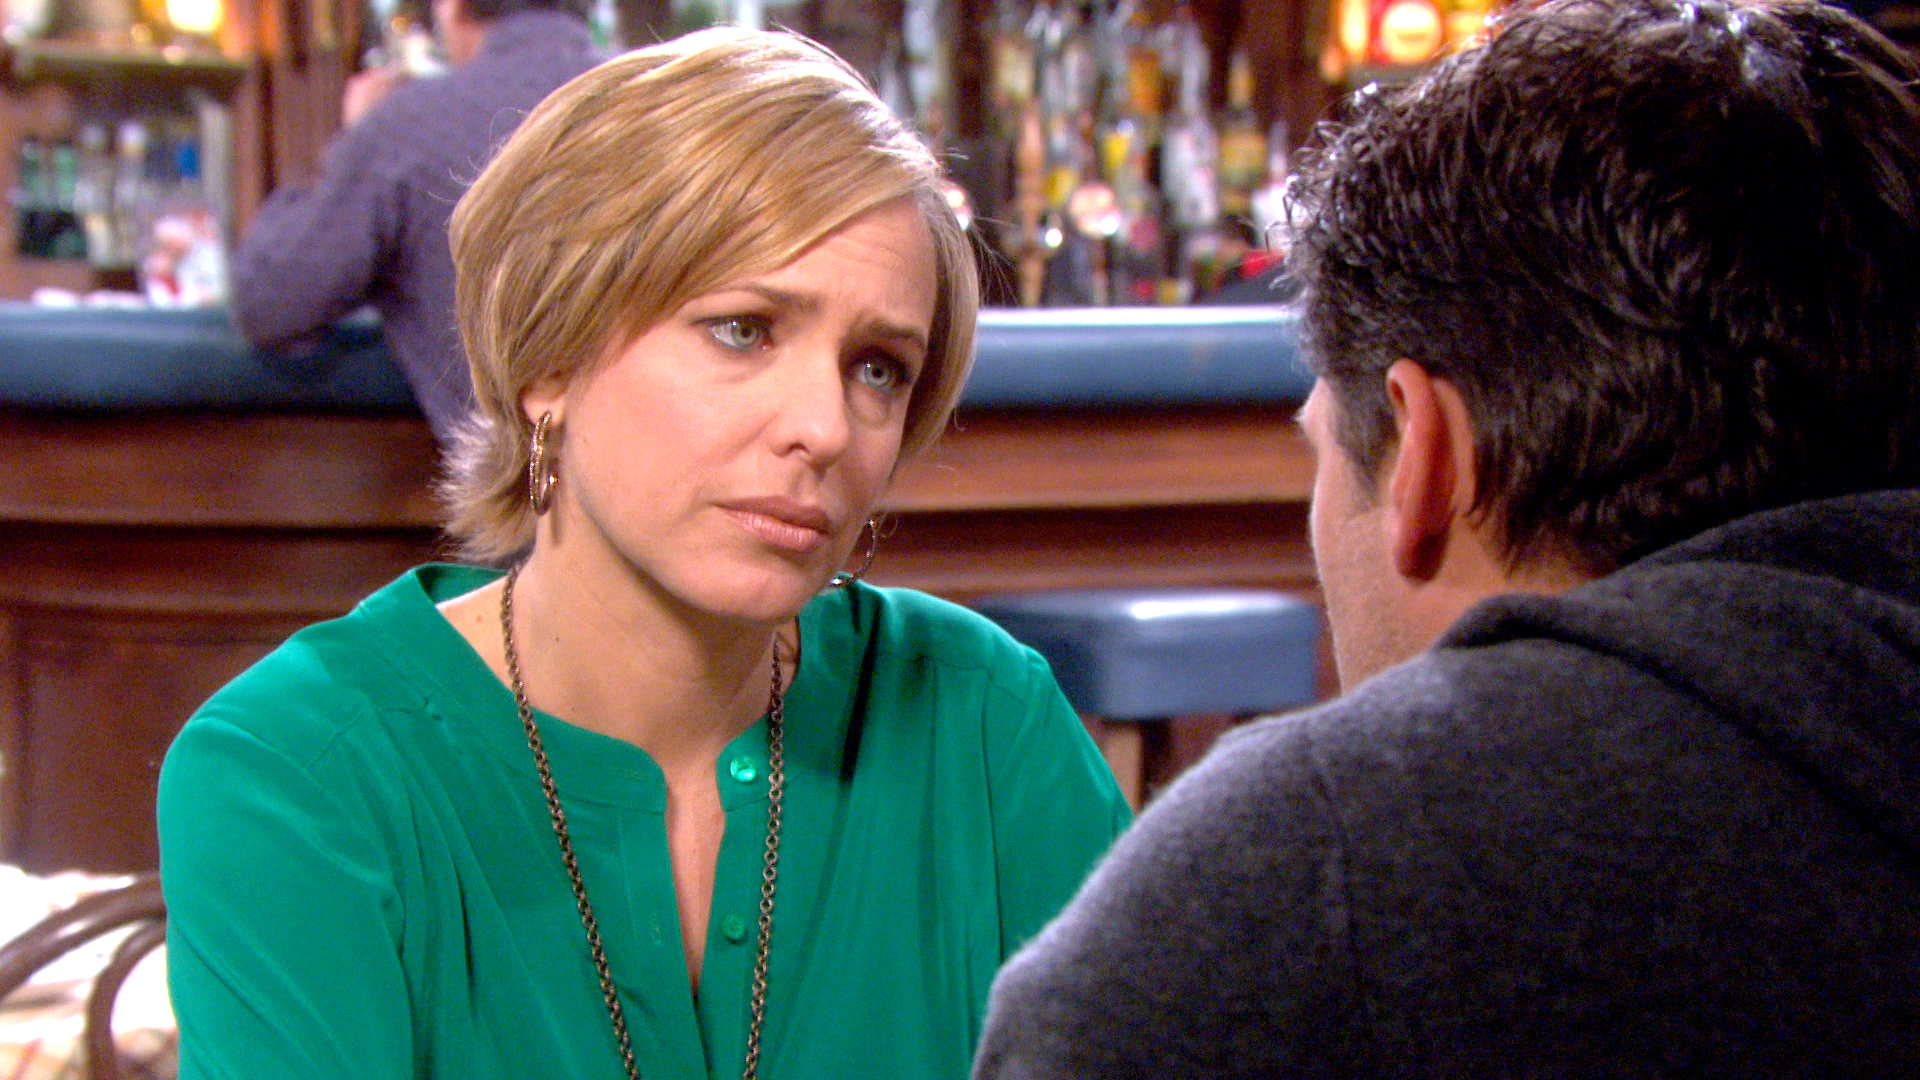 Nicole digs up dirt on Liam and uncovers startling information.